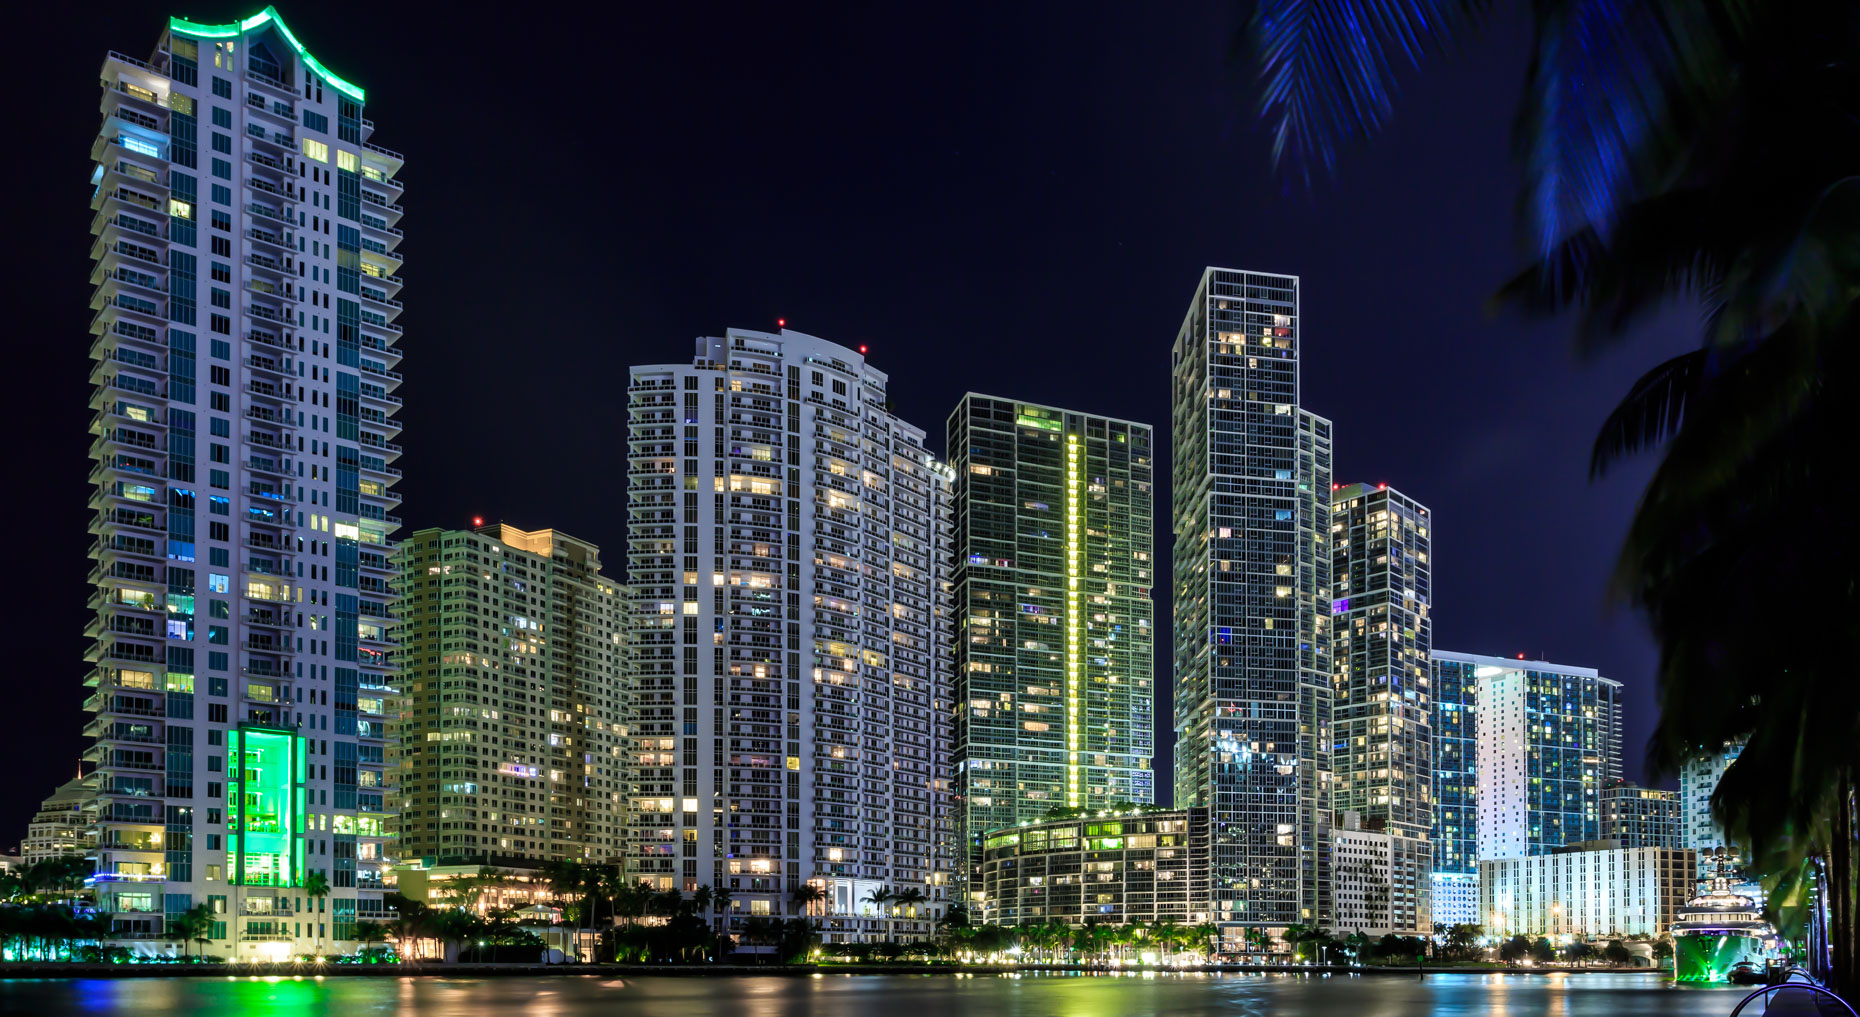 Miami River Brickell